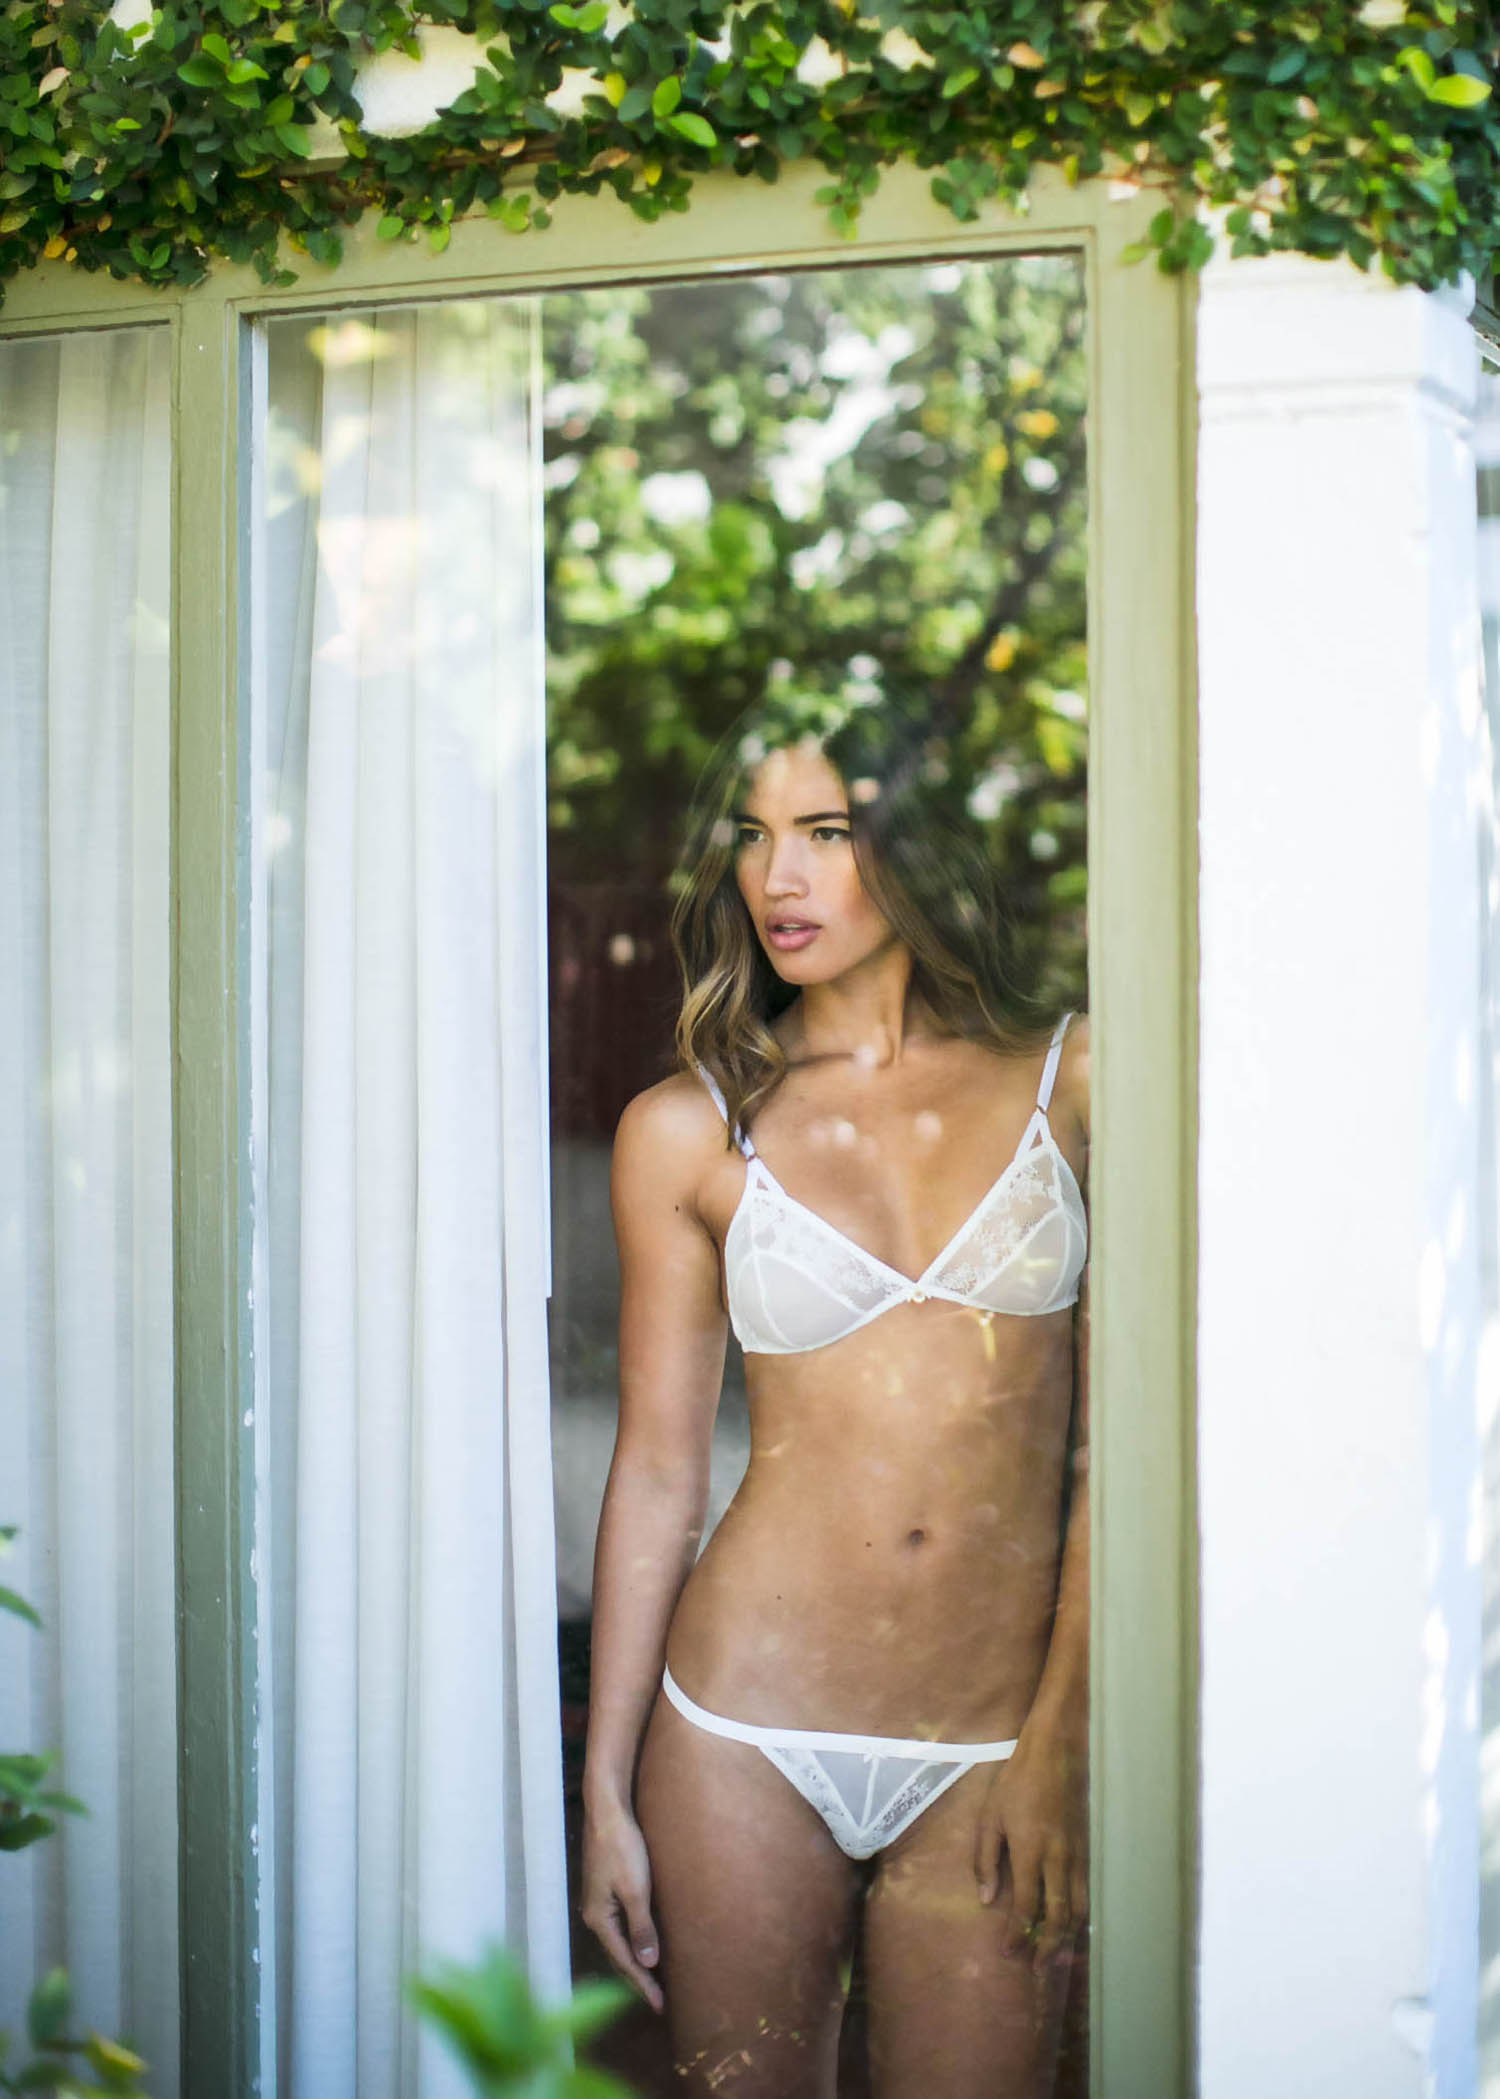 Cleavage Emily Bett Rickards nudes (26 photo), Topless, Bikini, Instagram, lingerie 2015